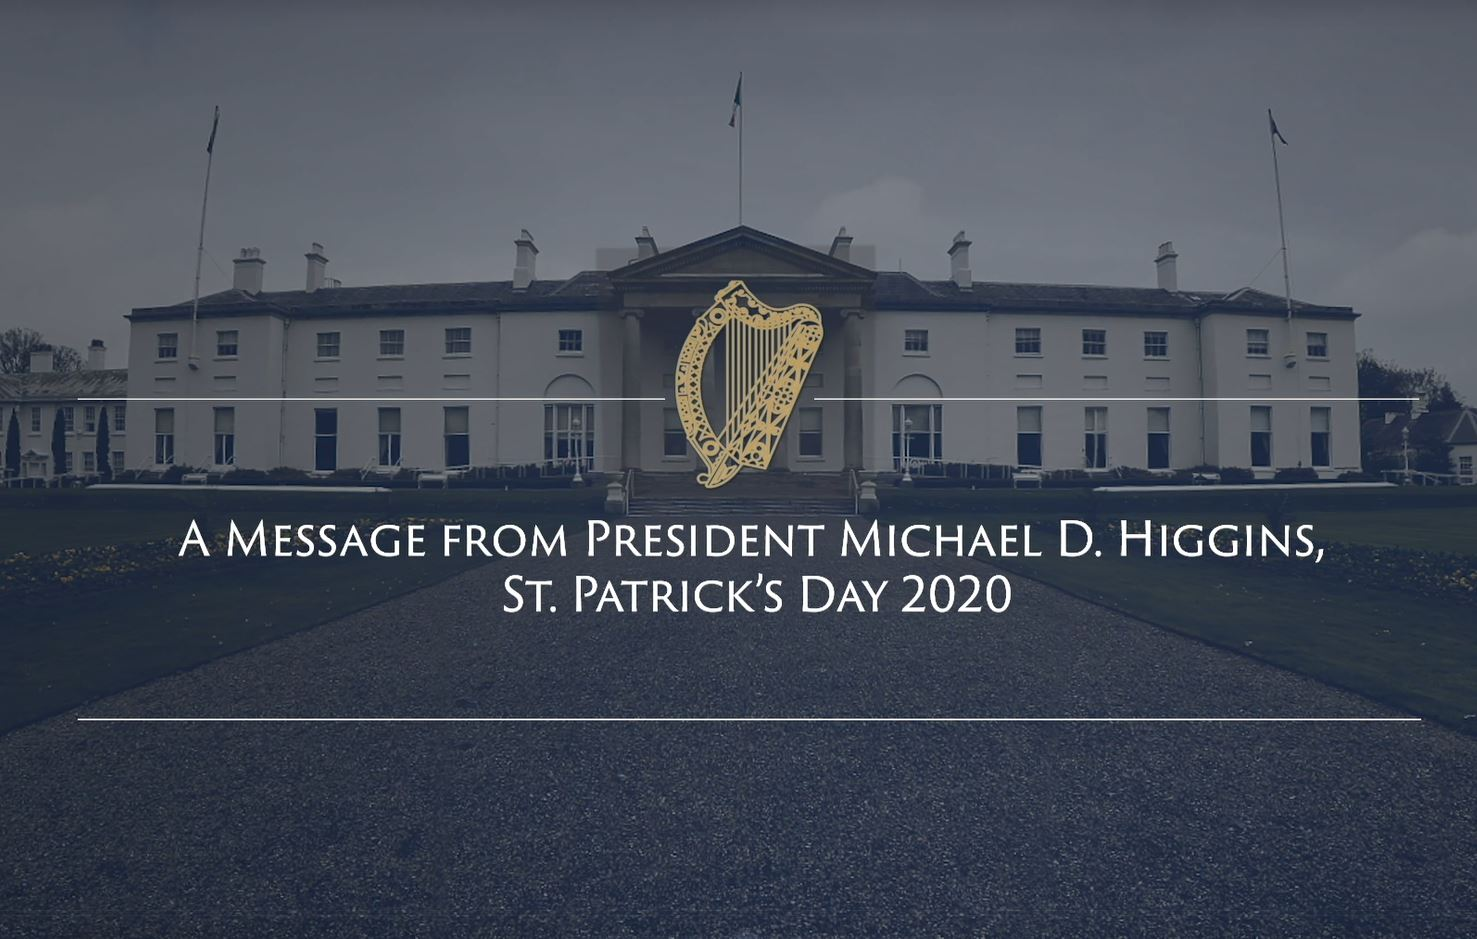 2020 St. Patrick's Day Message from President Michael D. Higgins